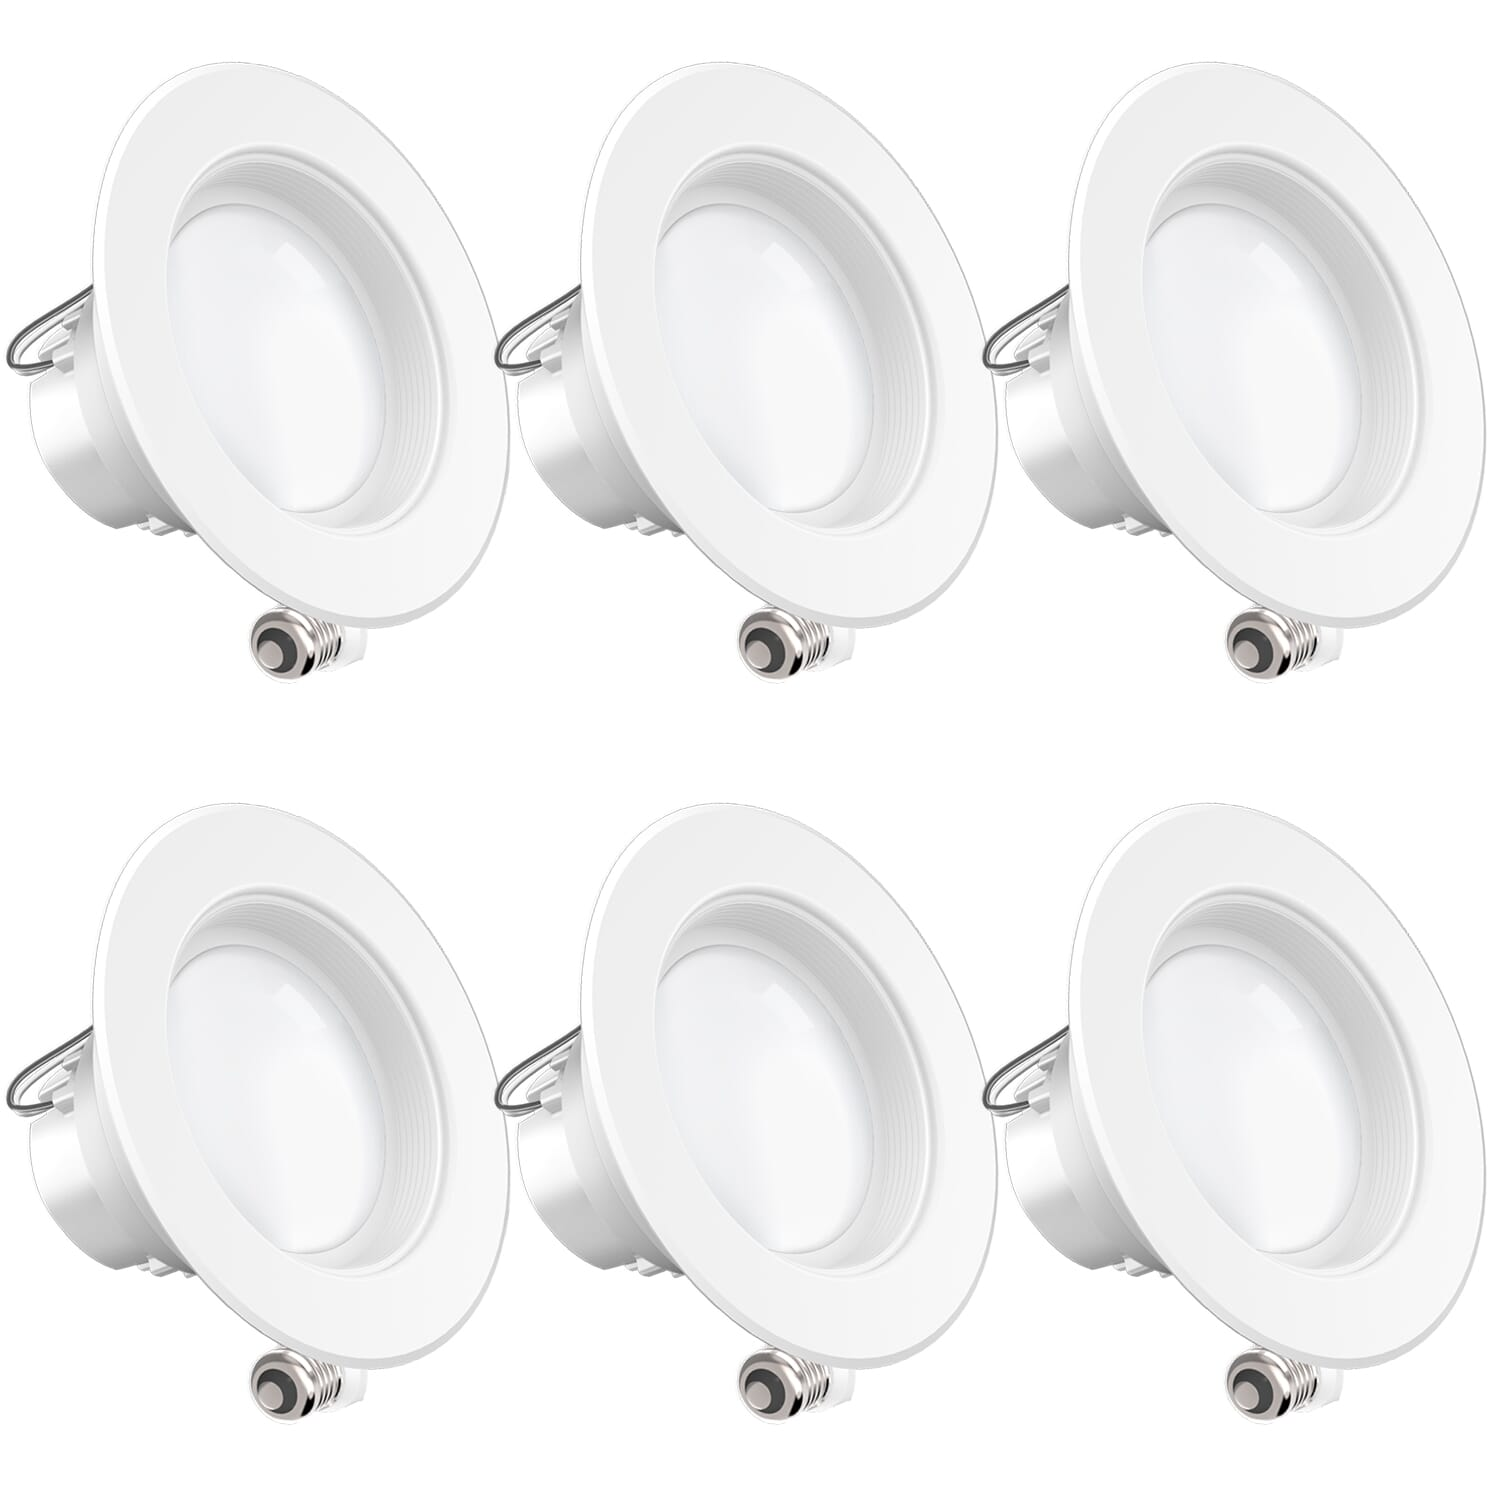 sunco lighting 6 pack 4 inch led recessed downlight baffle trim dimmable 11w 40w 5000k daylight 660 lm damp rated simple retrofit installation